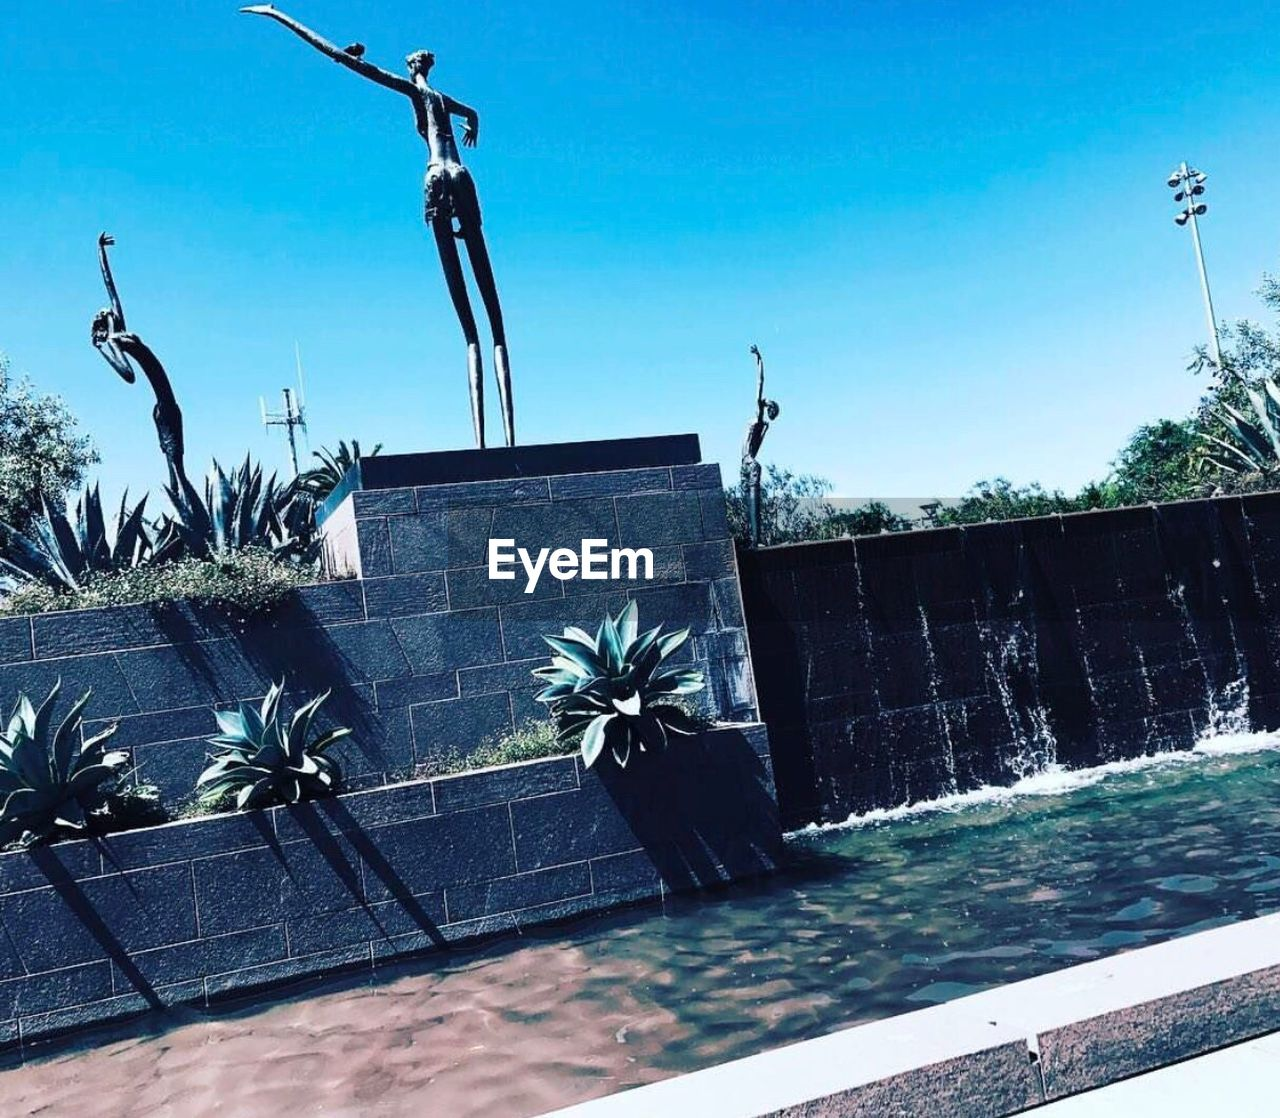 clear sky, day, outdoors, statue, no people, built structure, blue, tree, building exterior, architecture, sculpture, water, swimming pool, palm tree, sky, nature